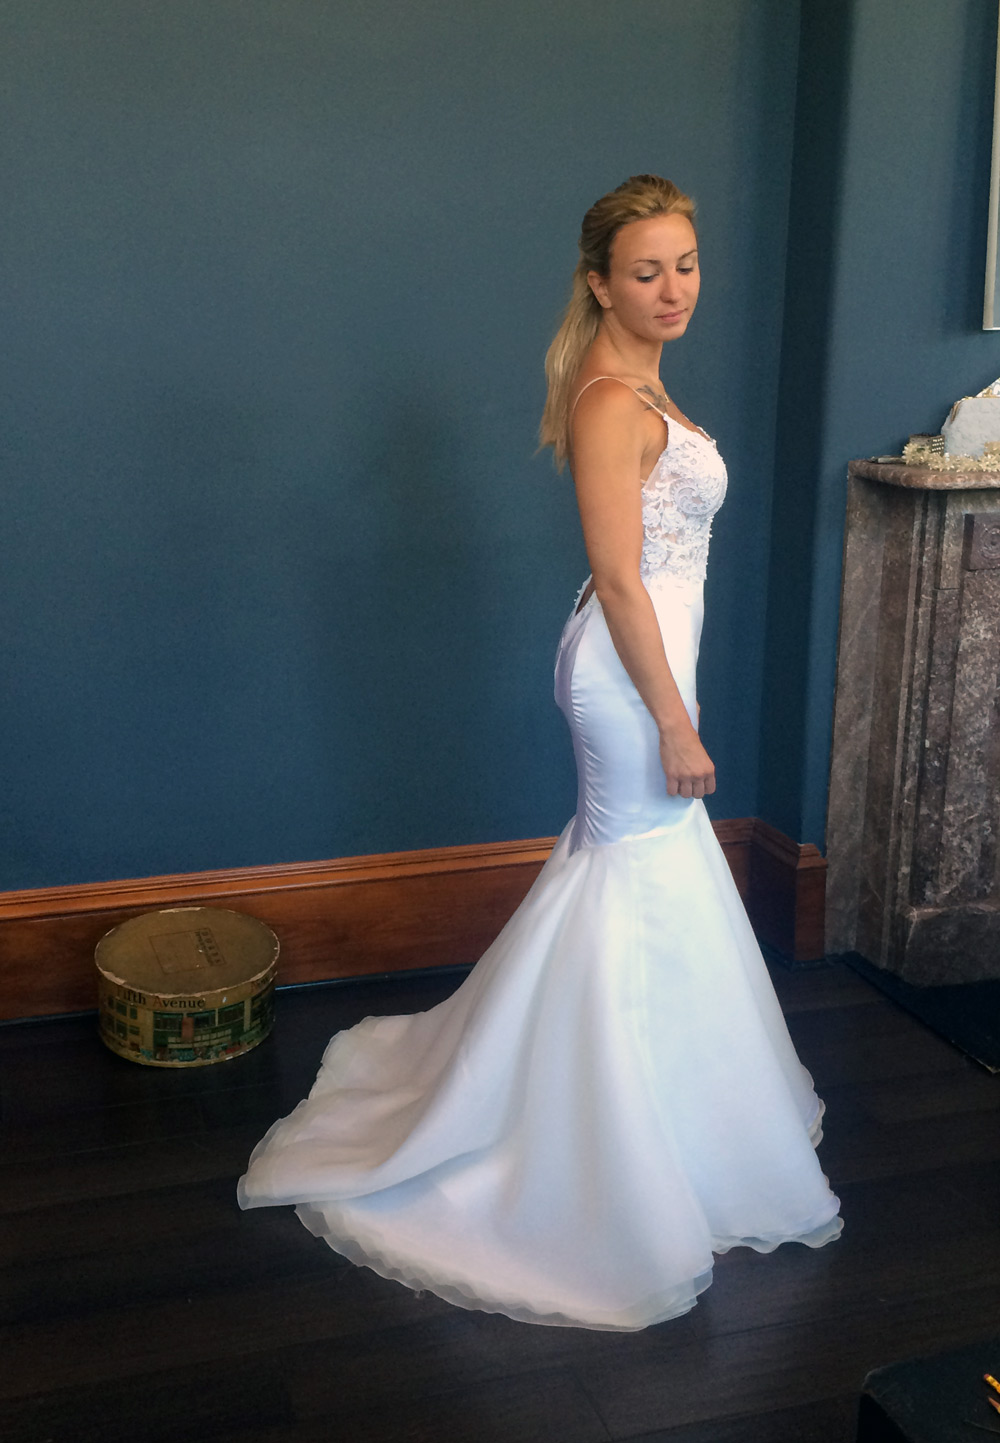 Krysta during her final fitting, looking every bit the bride – even before hair and makeup!